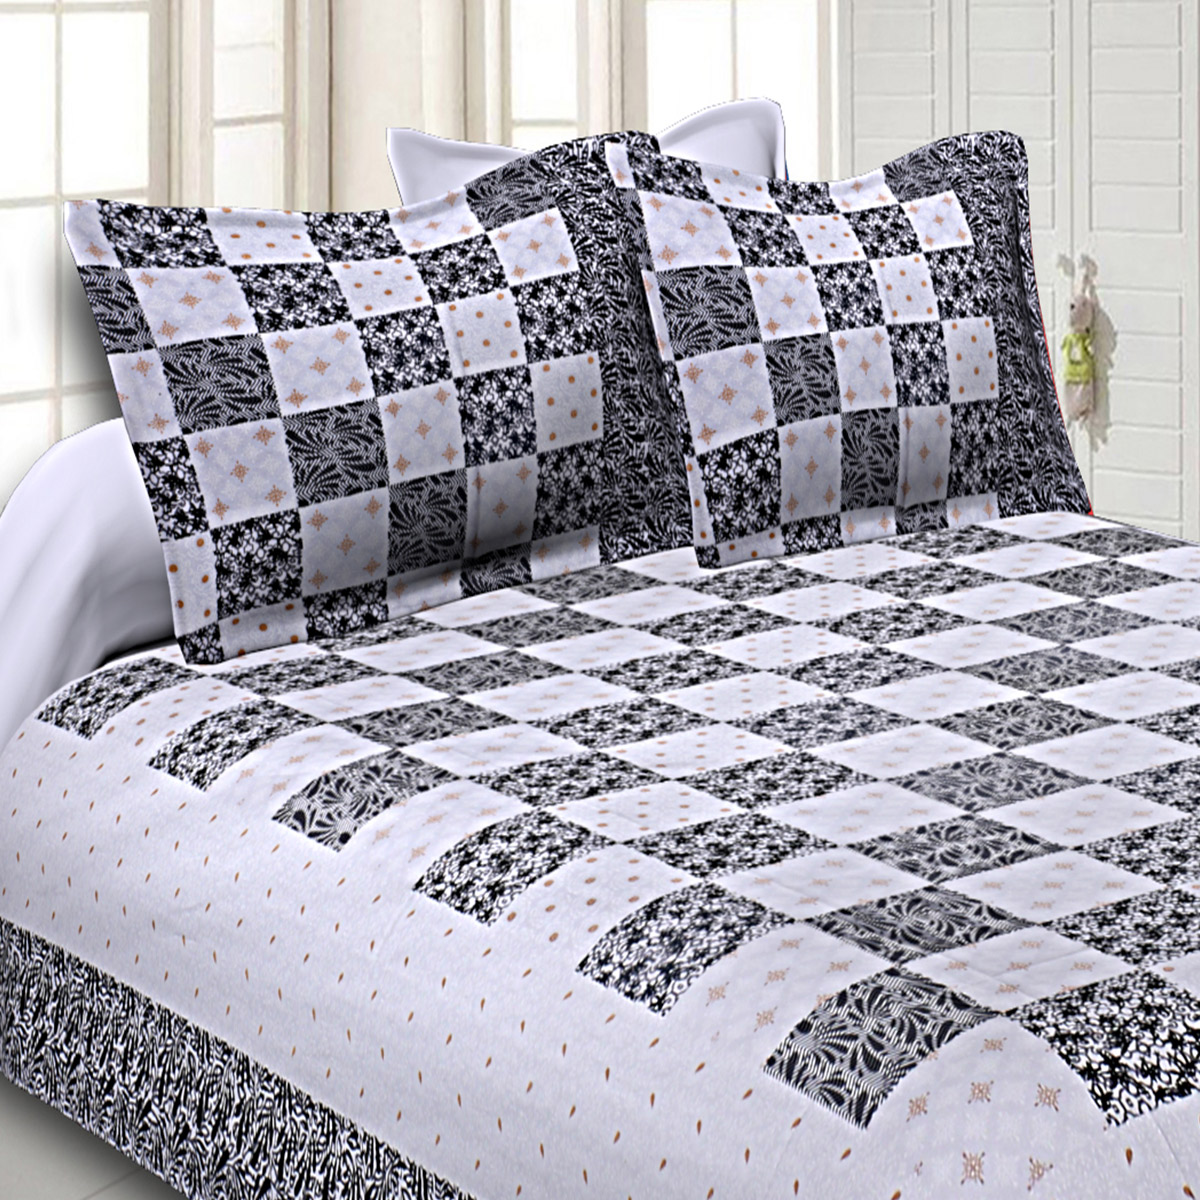 Delightful Black Colored Checkered Gold Printed Cotton Double Bedsheet With Pillow Cover